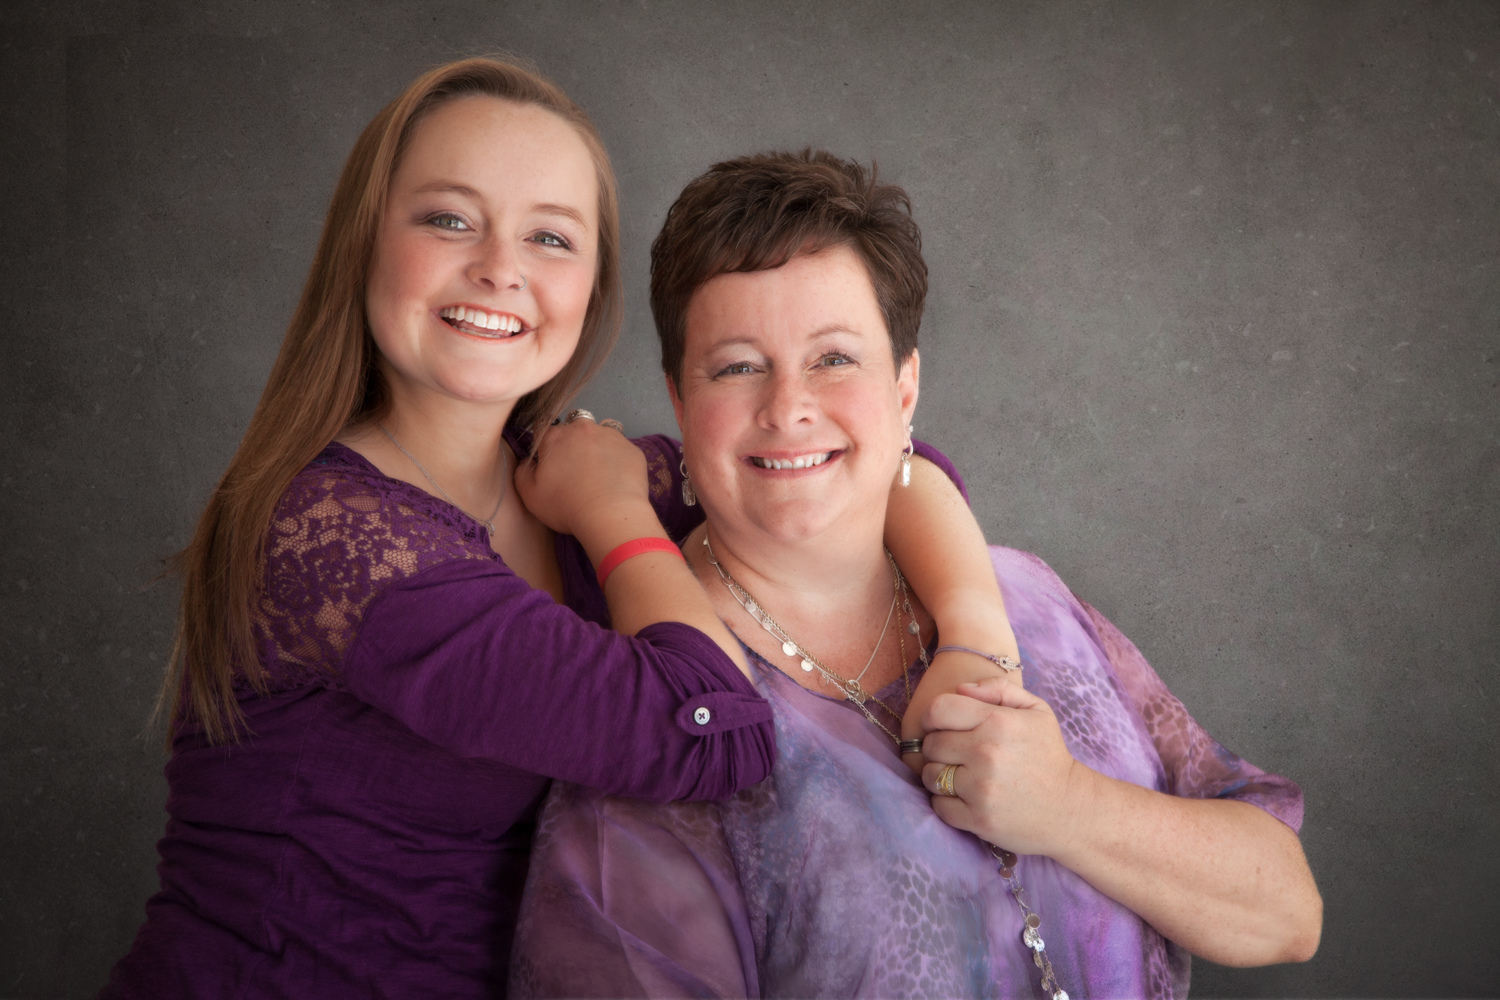 Portrait-Mothers-and-Daughters--smiling-together-and-proud-070.jpg